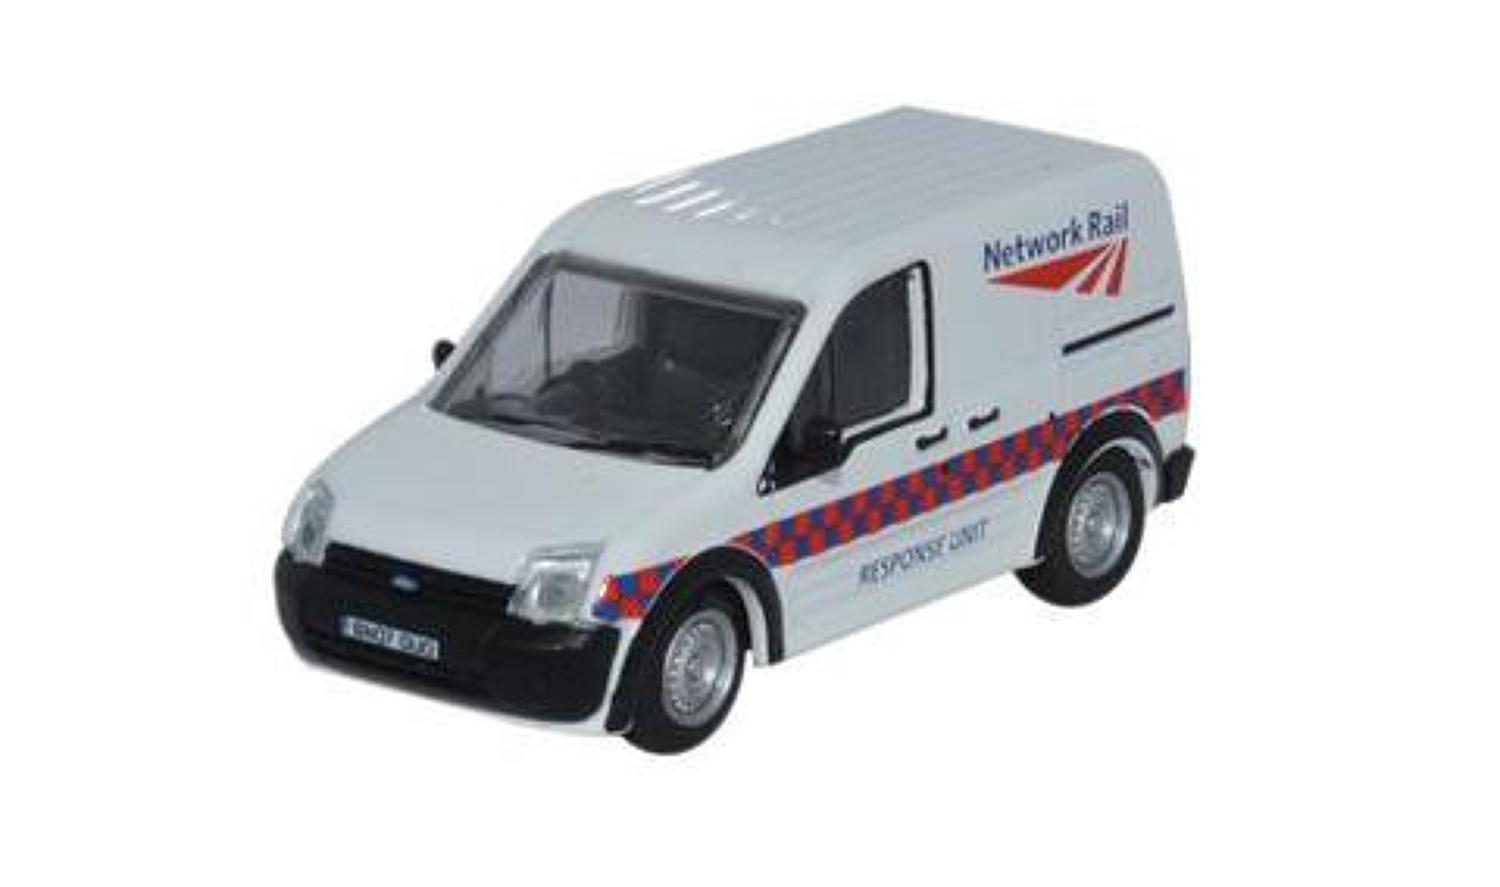 Ford Transit Connect Network Rail